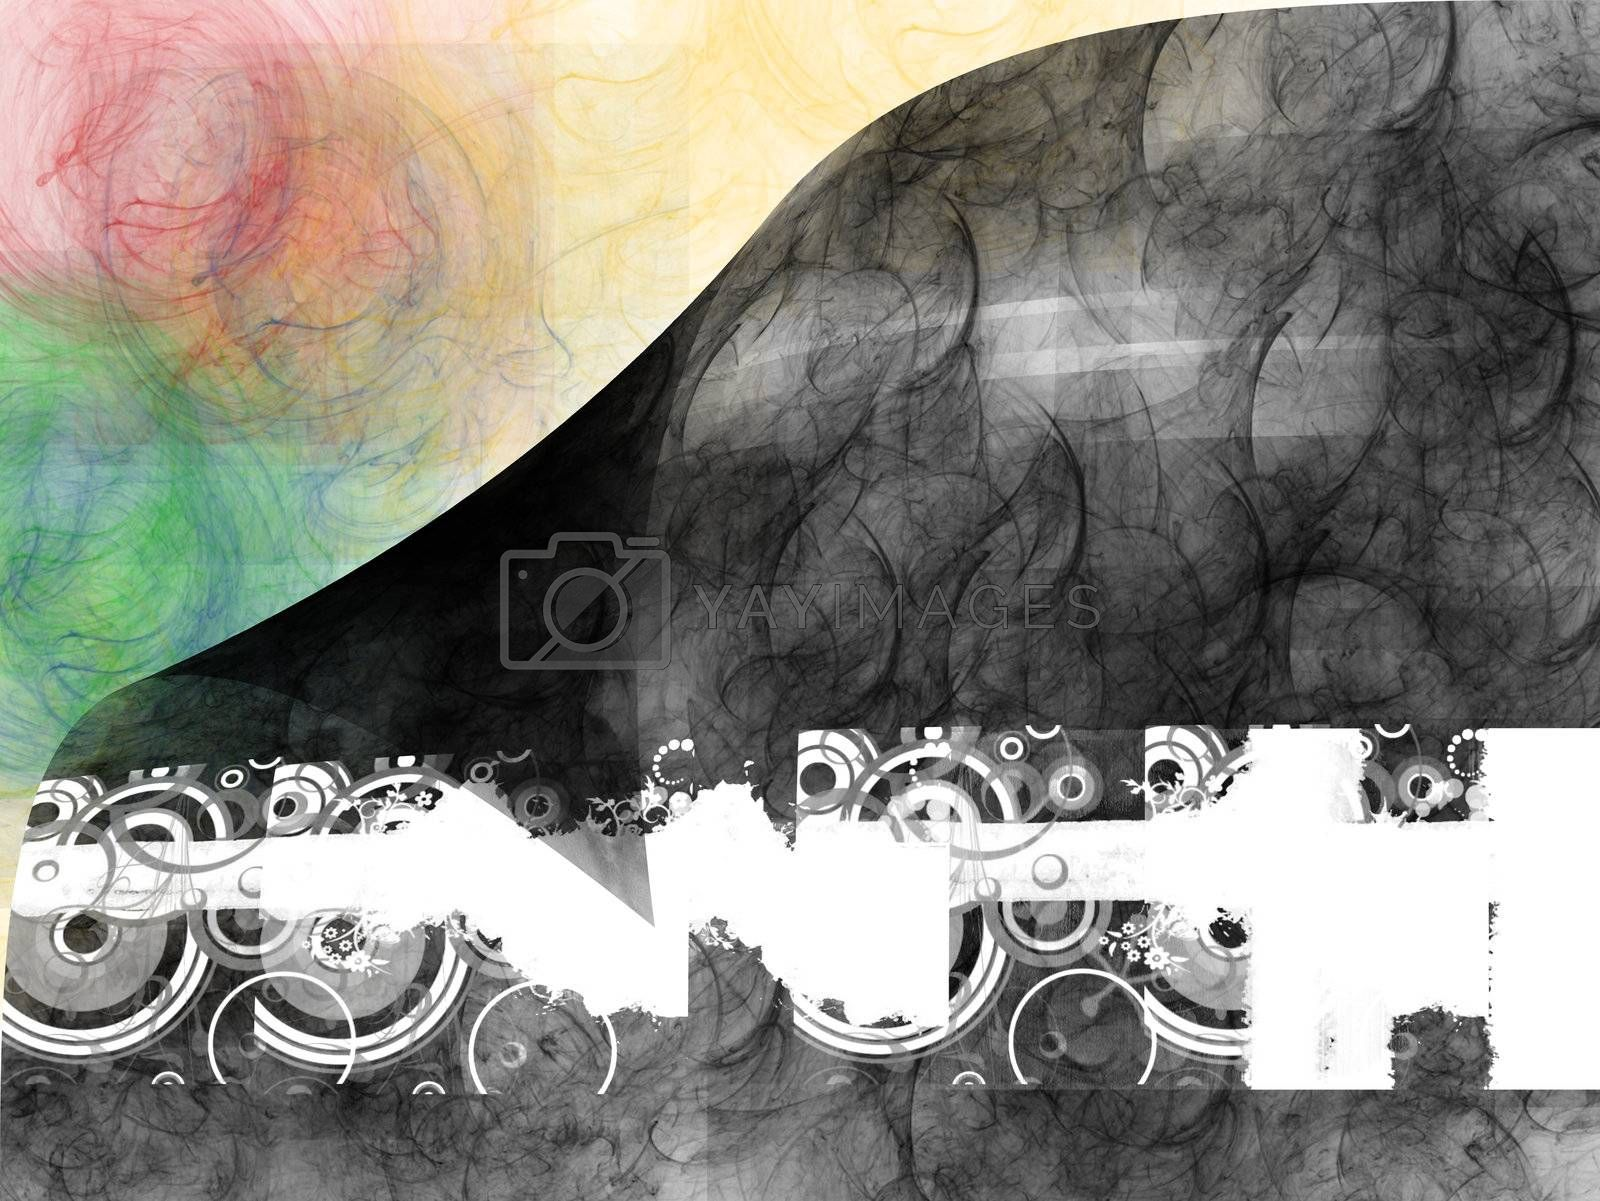 abstract design with black, white, red, green, and orange colors